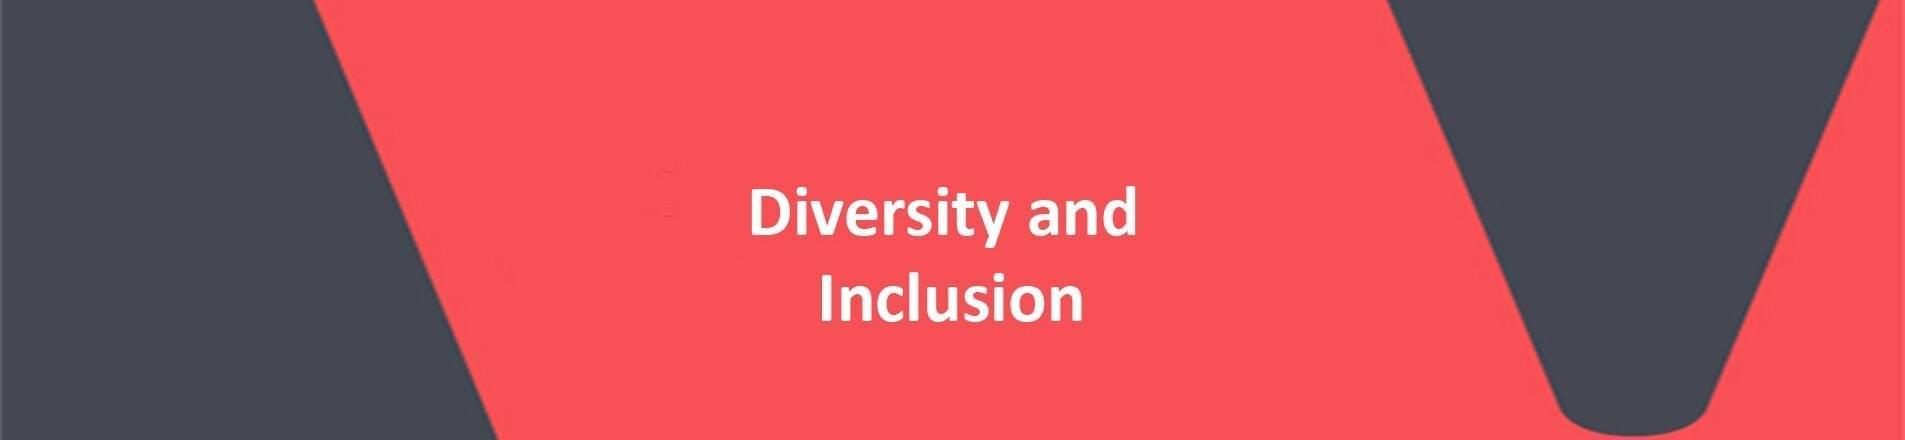 Diversity and Inclusion on red VERCIDA background